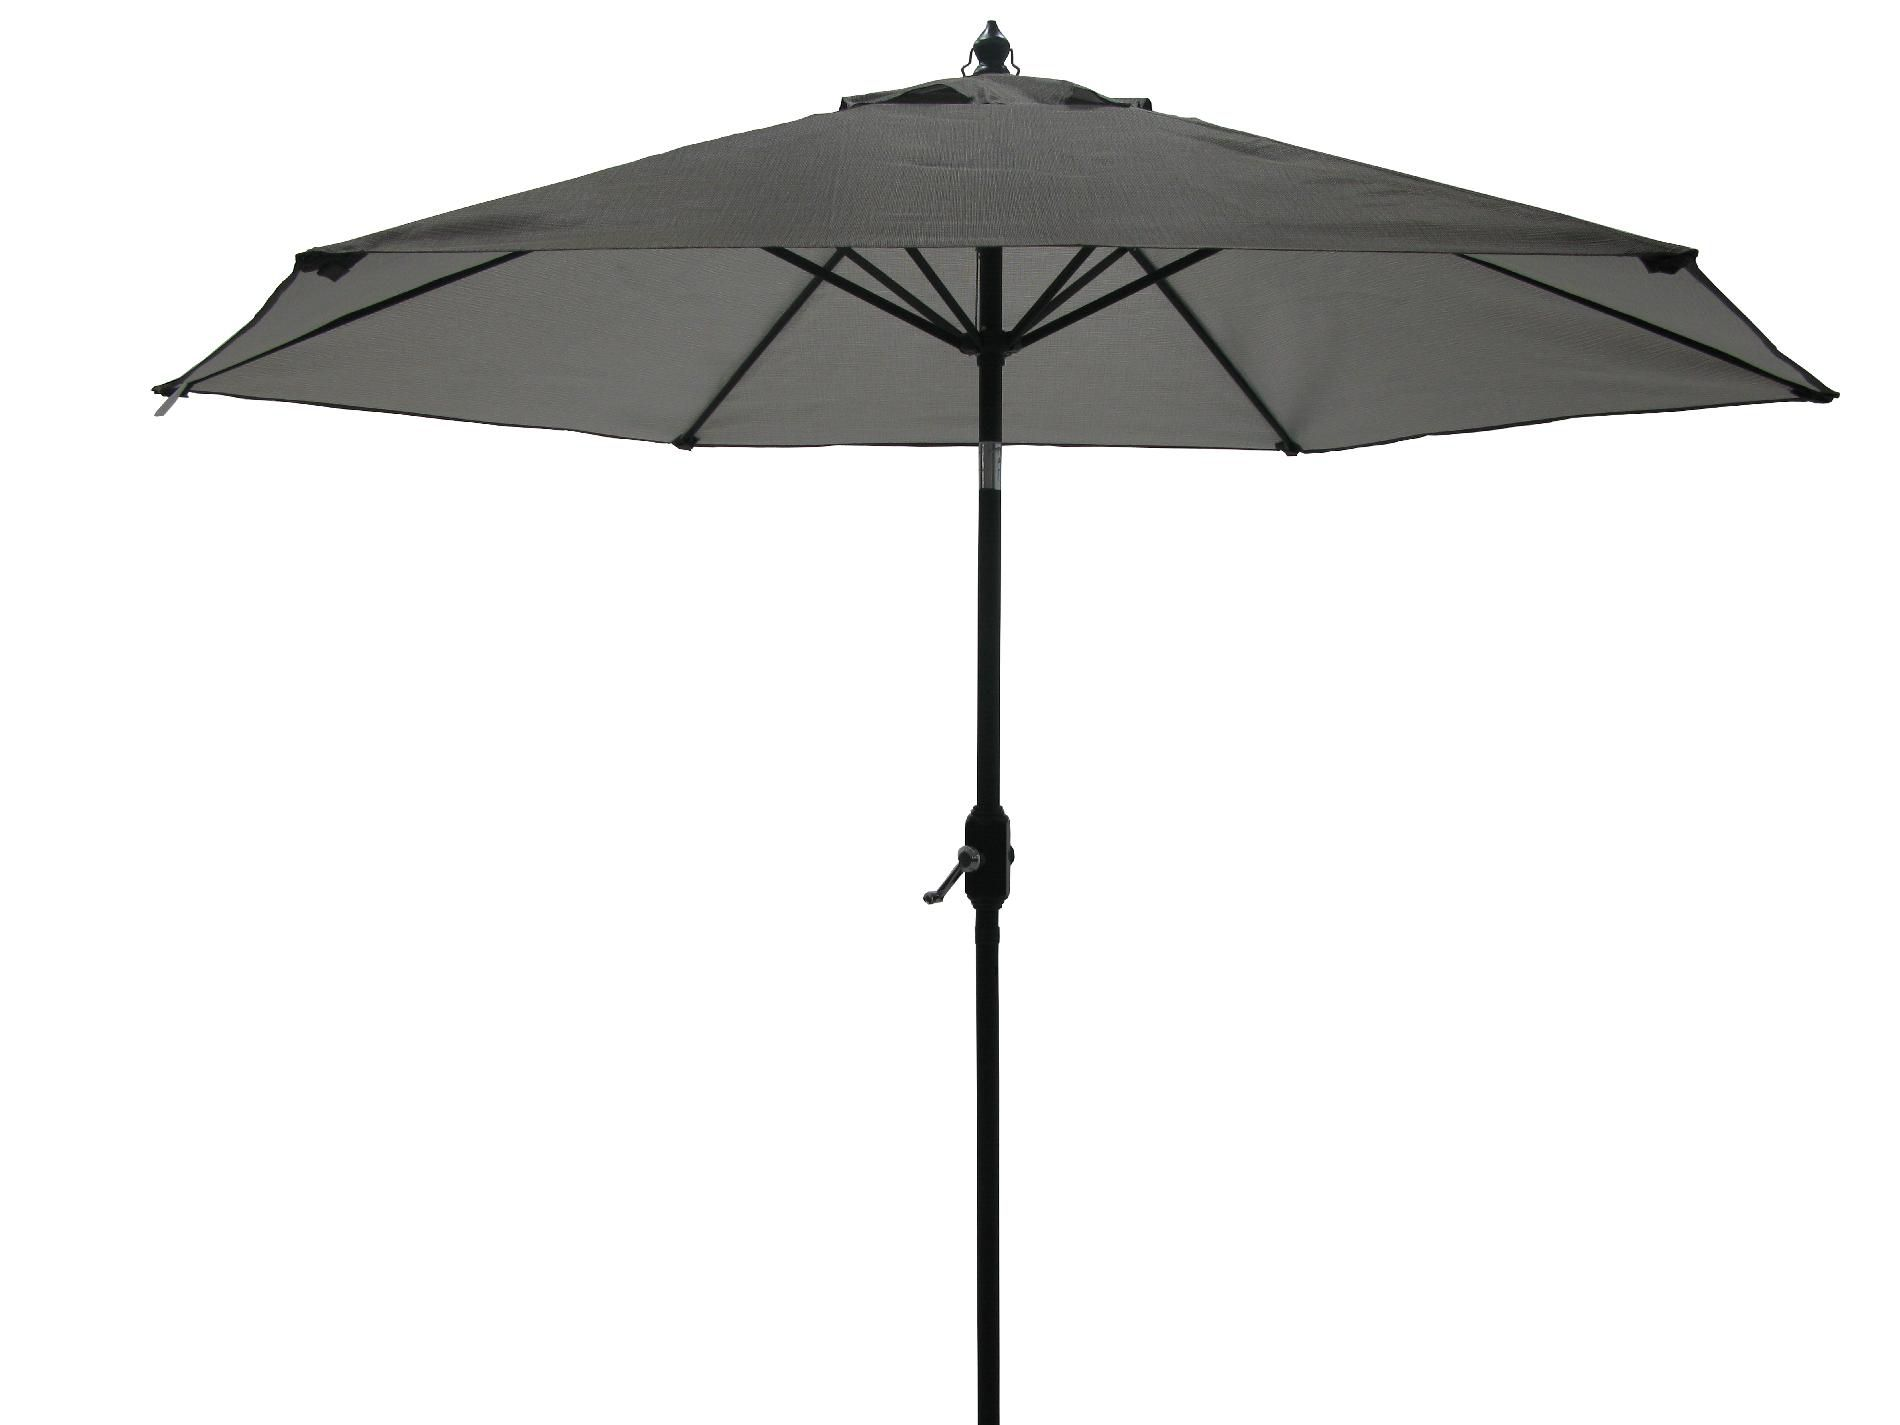 East Point 9 Ft. Market Umbrella